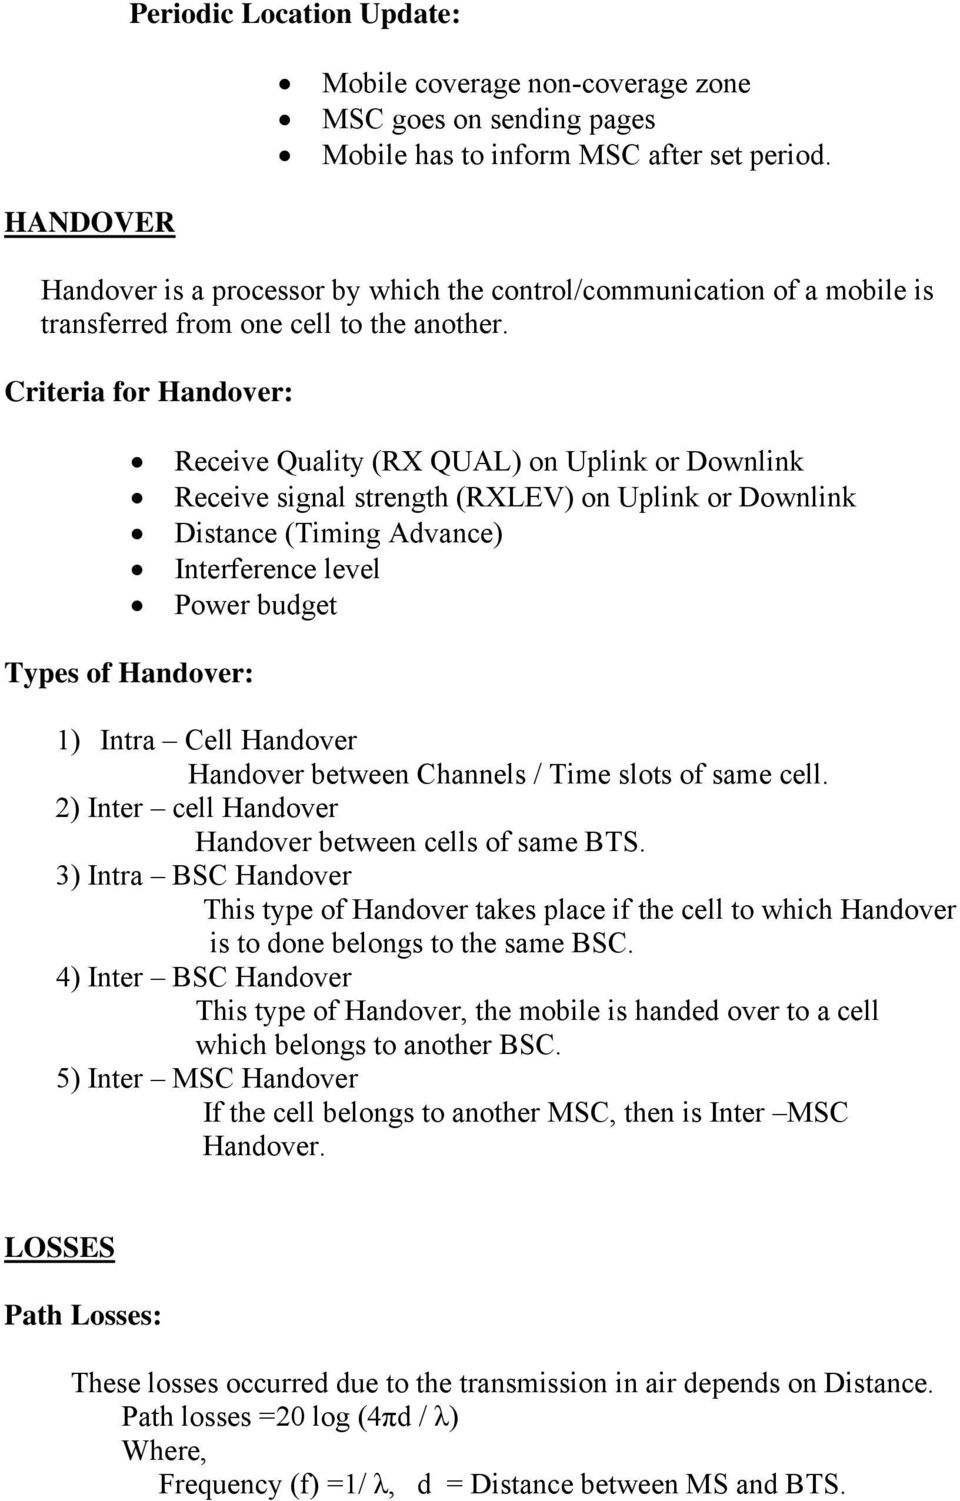 Criteria for Handover: Receive Quality (RX QUAL) on Uplink or Downlink Receive signal strength (RXLEV) on Uplink or Downlink Distance (Timing Advance) Interference level Power budget Types of